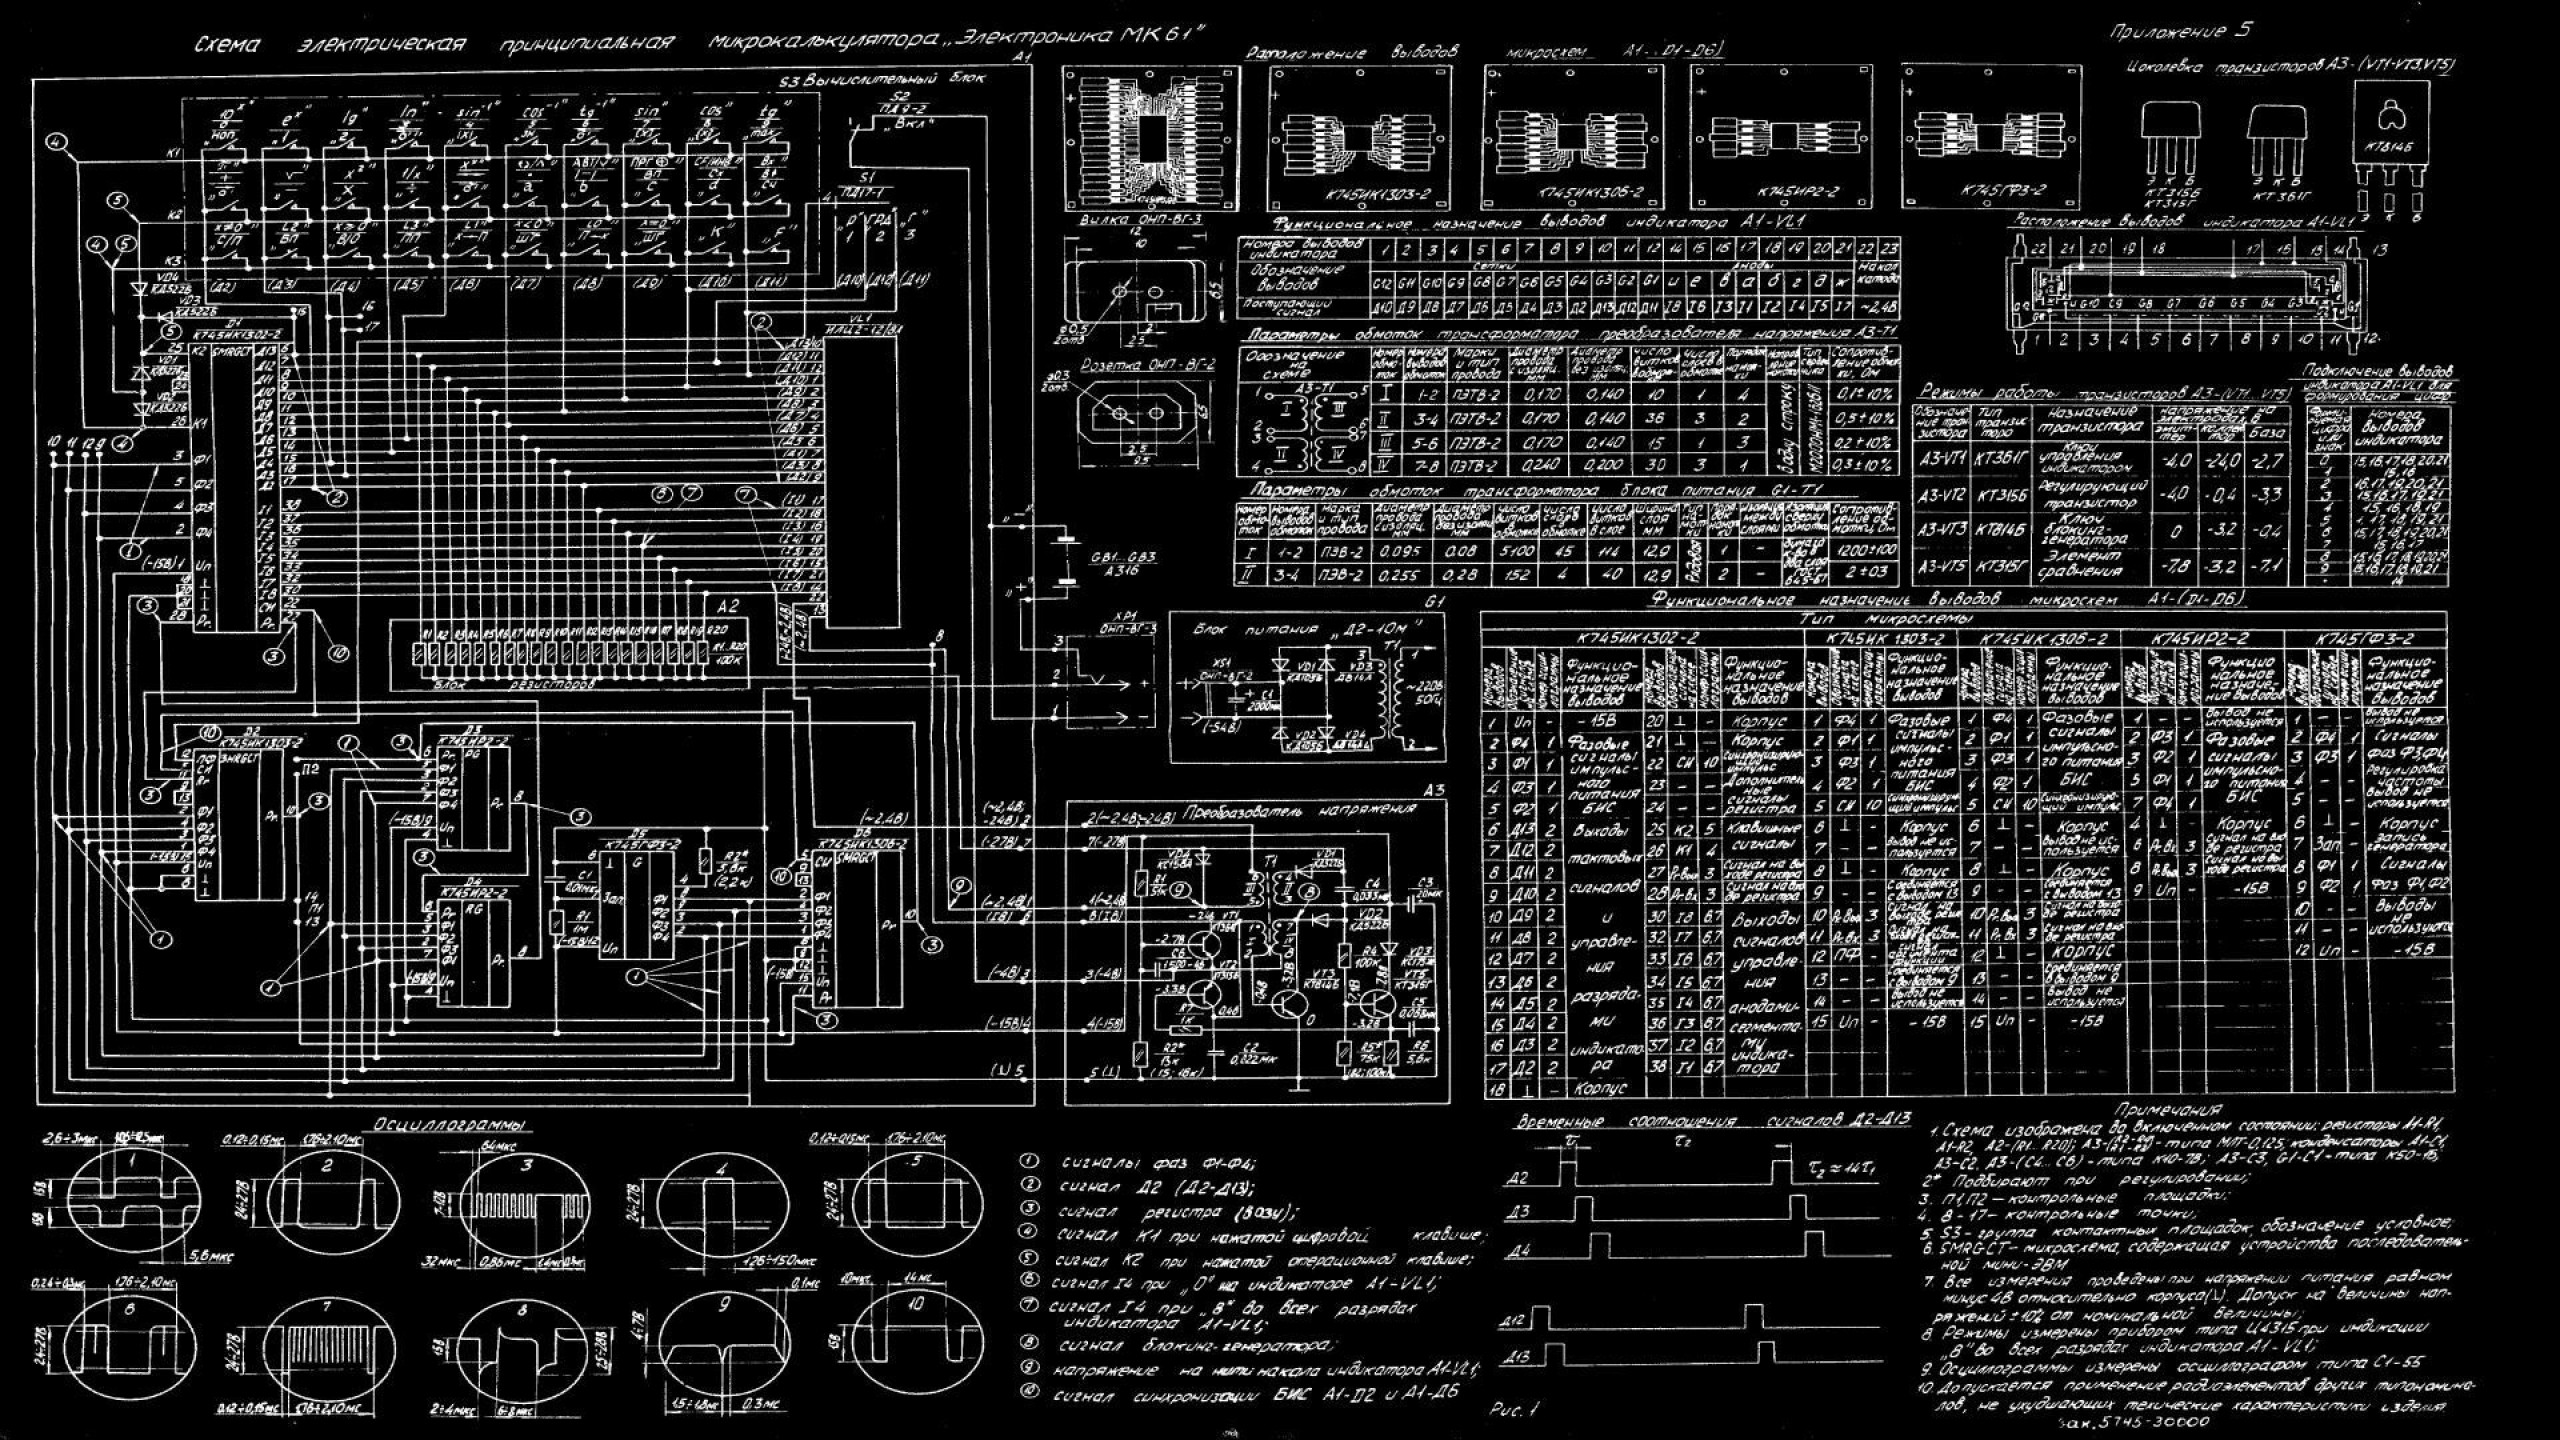 2560x1440 Download Wallpapers, Download  science schematic .